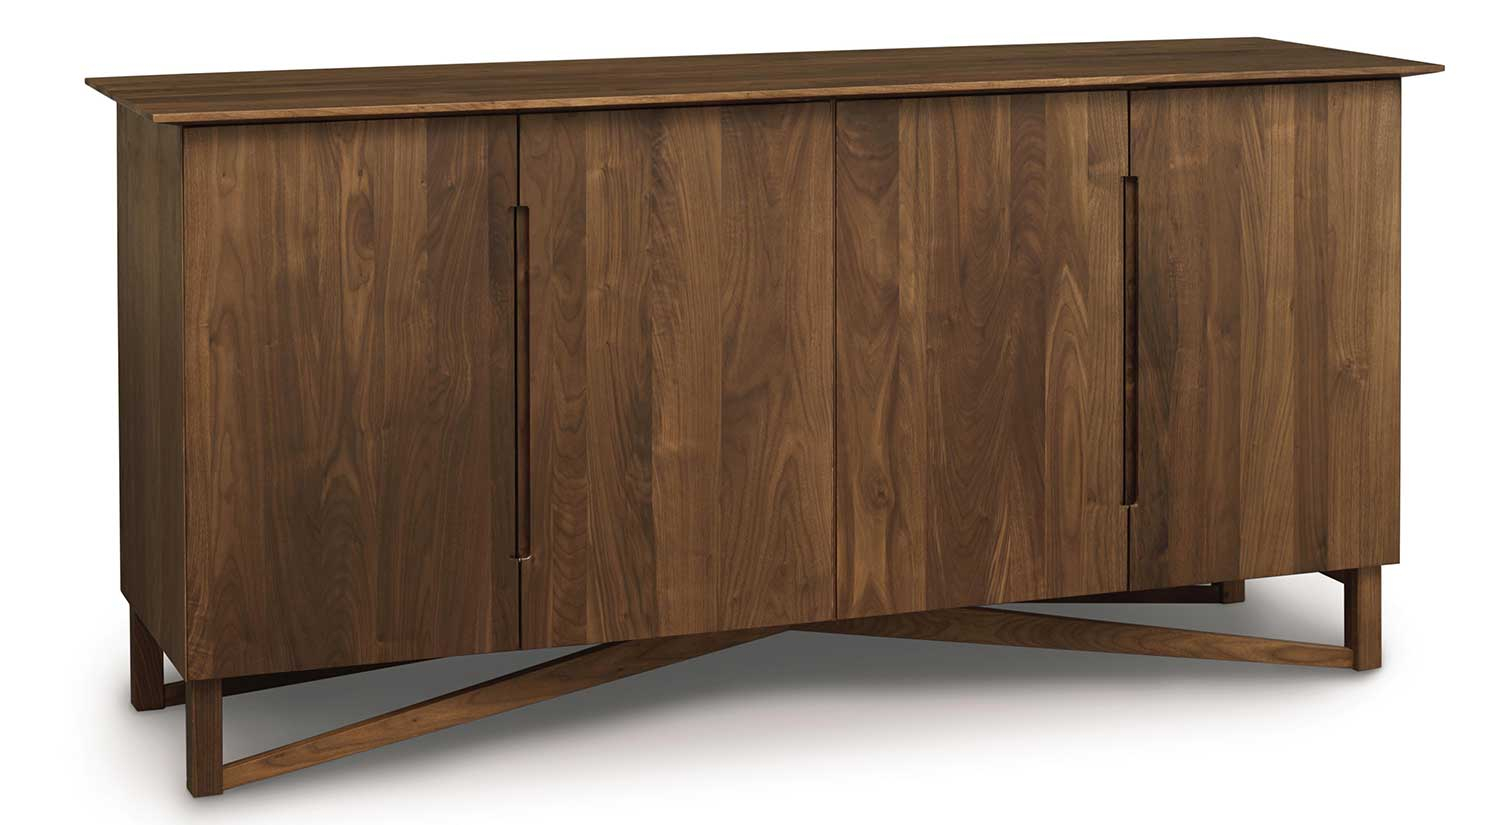 Circle Furniture – Exeter Buffet | Contemporary Buffet Inside Contemporary Buffets (View 6 of 30)